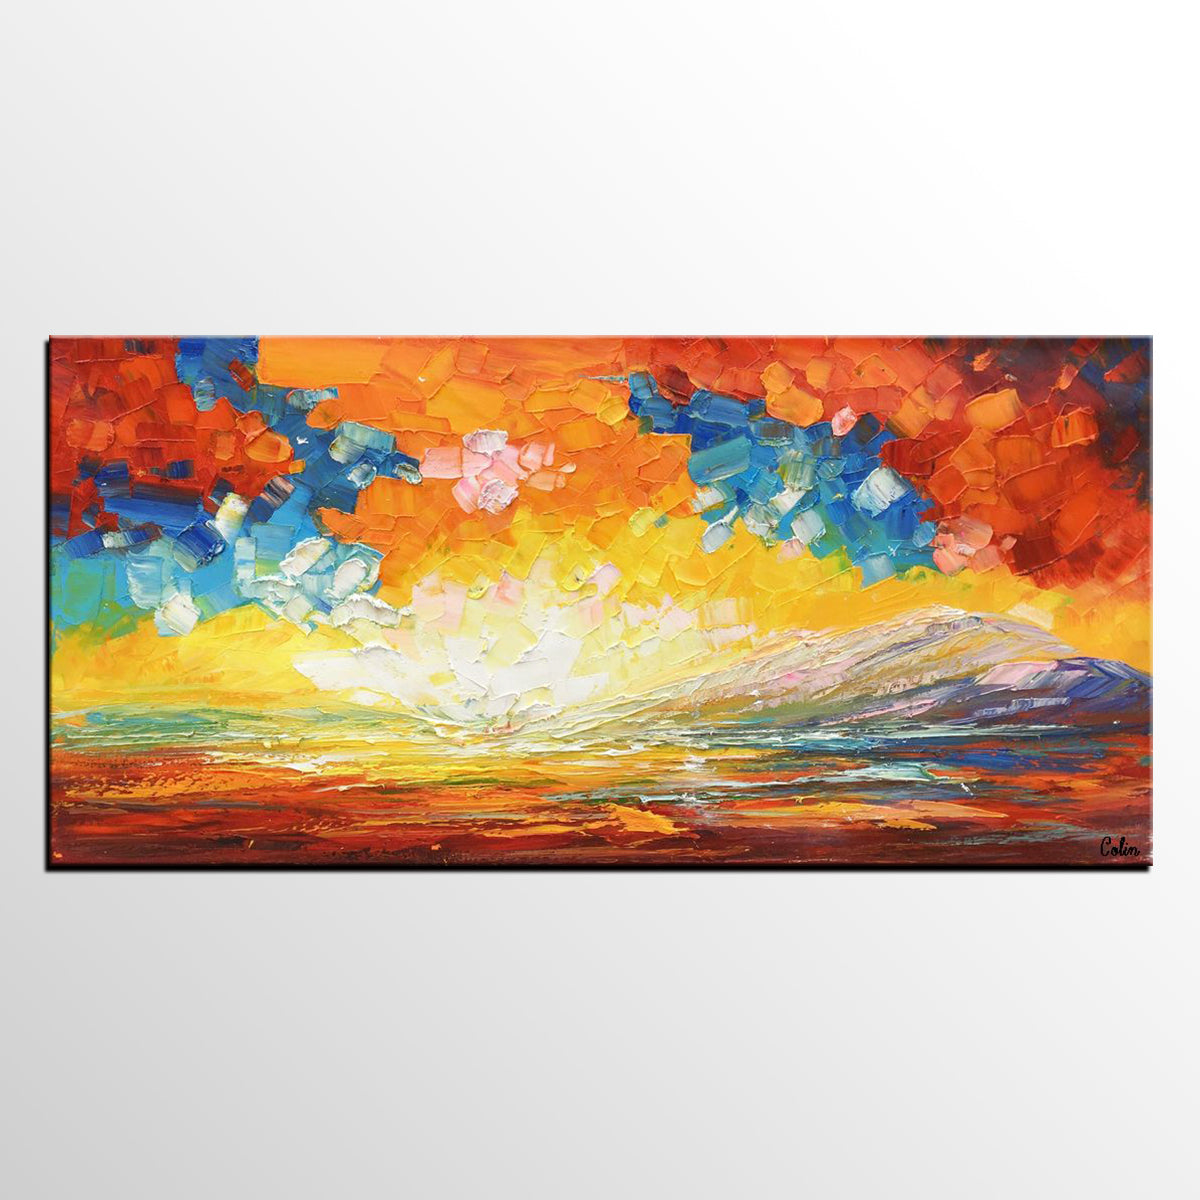 Landscape Painting, Abstract Art, Canvas Painting, Heavy Texture Painting - artworkcanvas